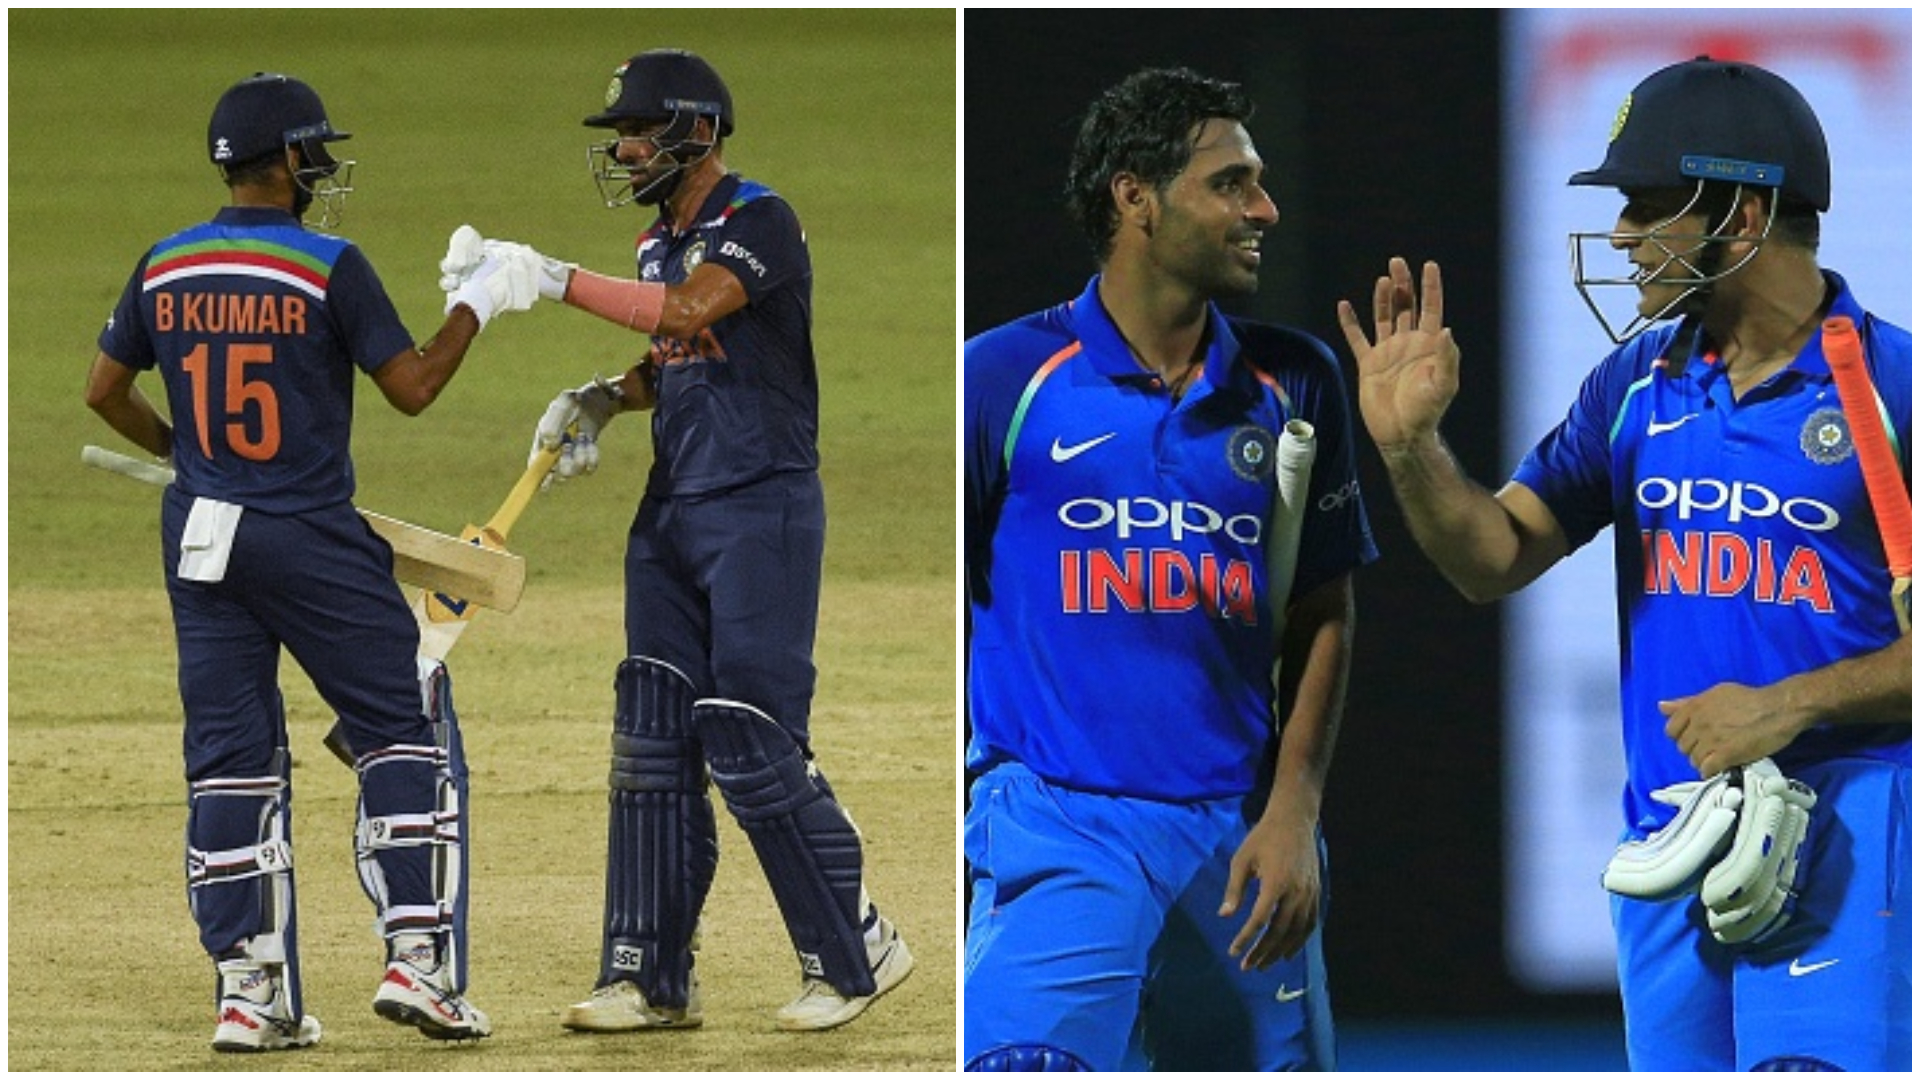 Bhuvi recalls 2017 partnership with MS Dhoni in similar situation against Sri Lanka   Getty